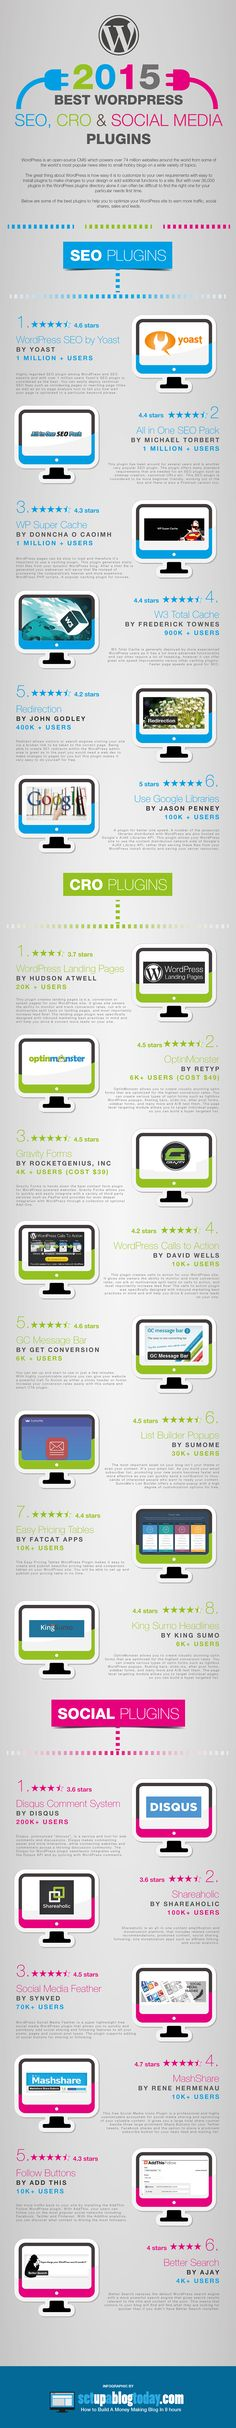 The Best WordPress Plugins for SEO, Social And CRO in 2015 Infographic